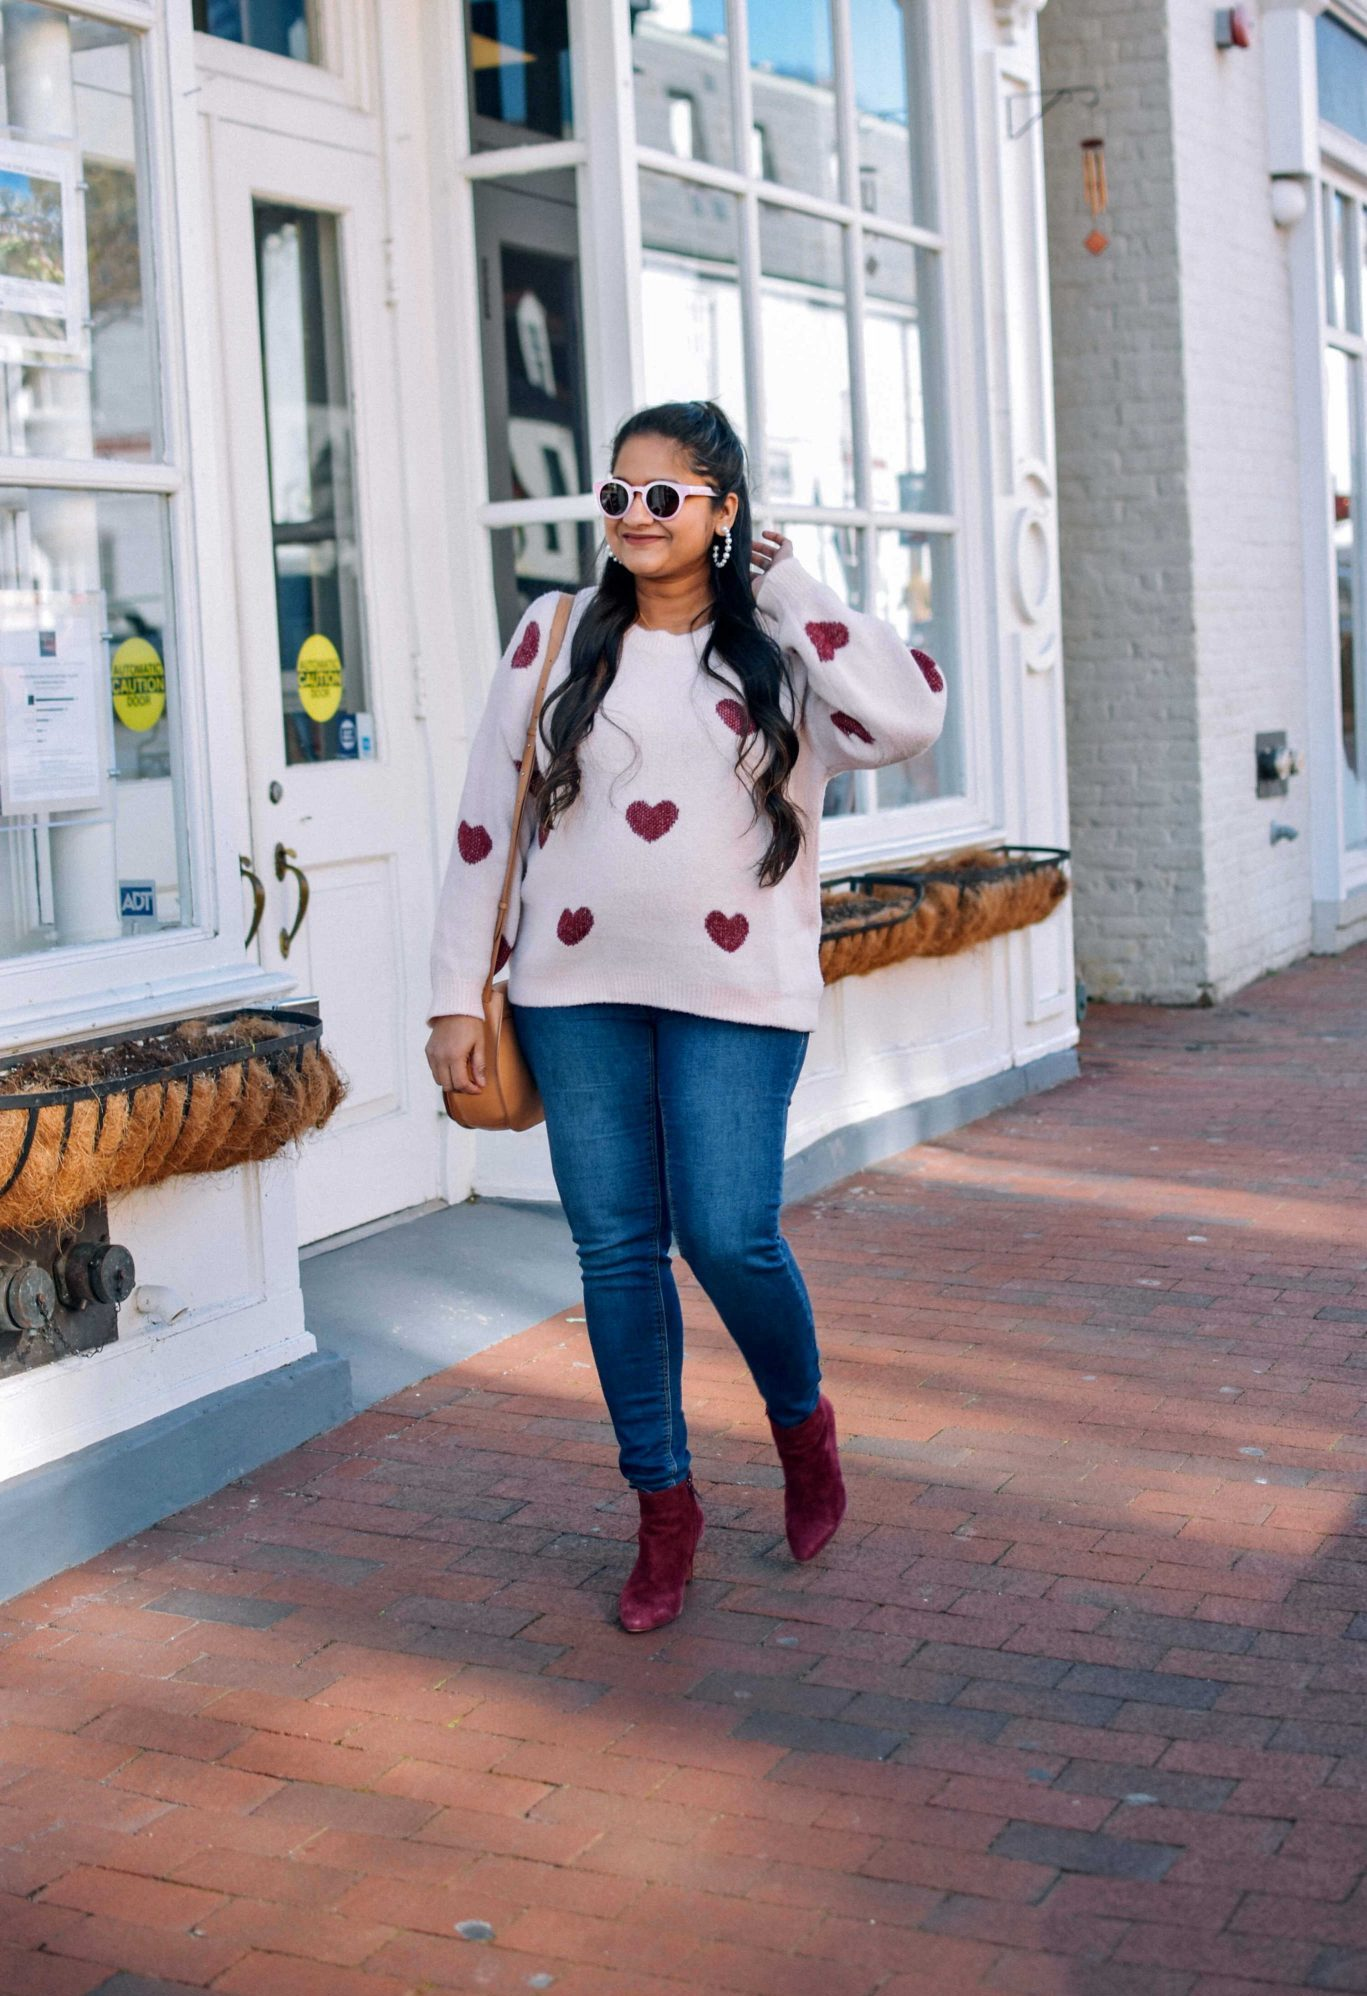 pregnancy Valentines day outfit-wearing pinklilly fuzzy Heart Pink Sweater, mango maternity jeans, Cuyana saddle bag, Illesteva pink sunglasses, Burgundy booties |Valentine's Day Outfit idea by popular Maryland modest fashion blog, Dreaming Loud: image of a woman wearing a heart print sweater, maternity skinny jeans, red suede ankle boots, and a Cuyana bag.